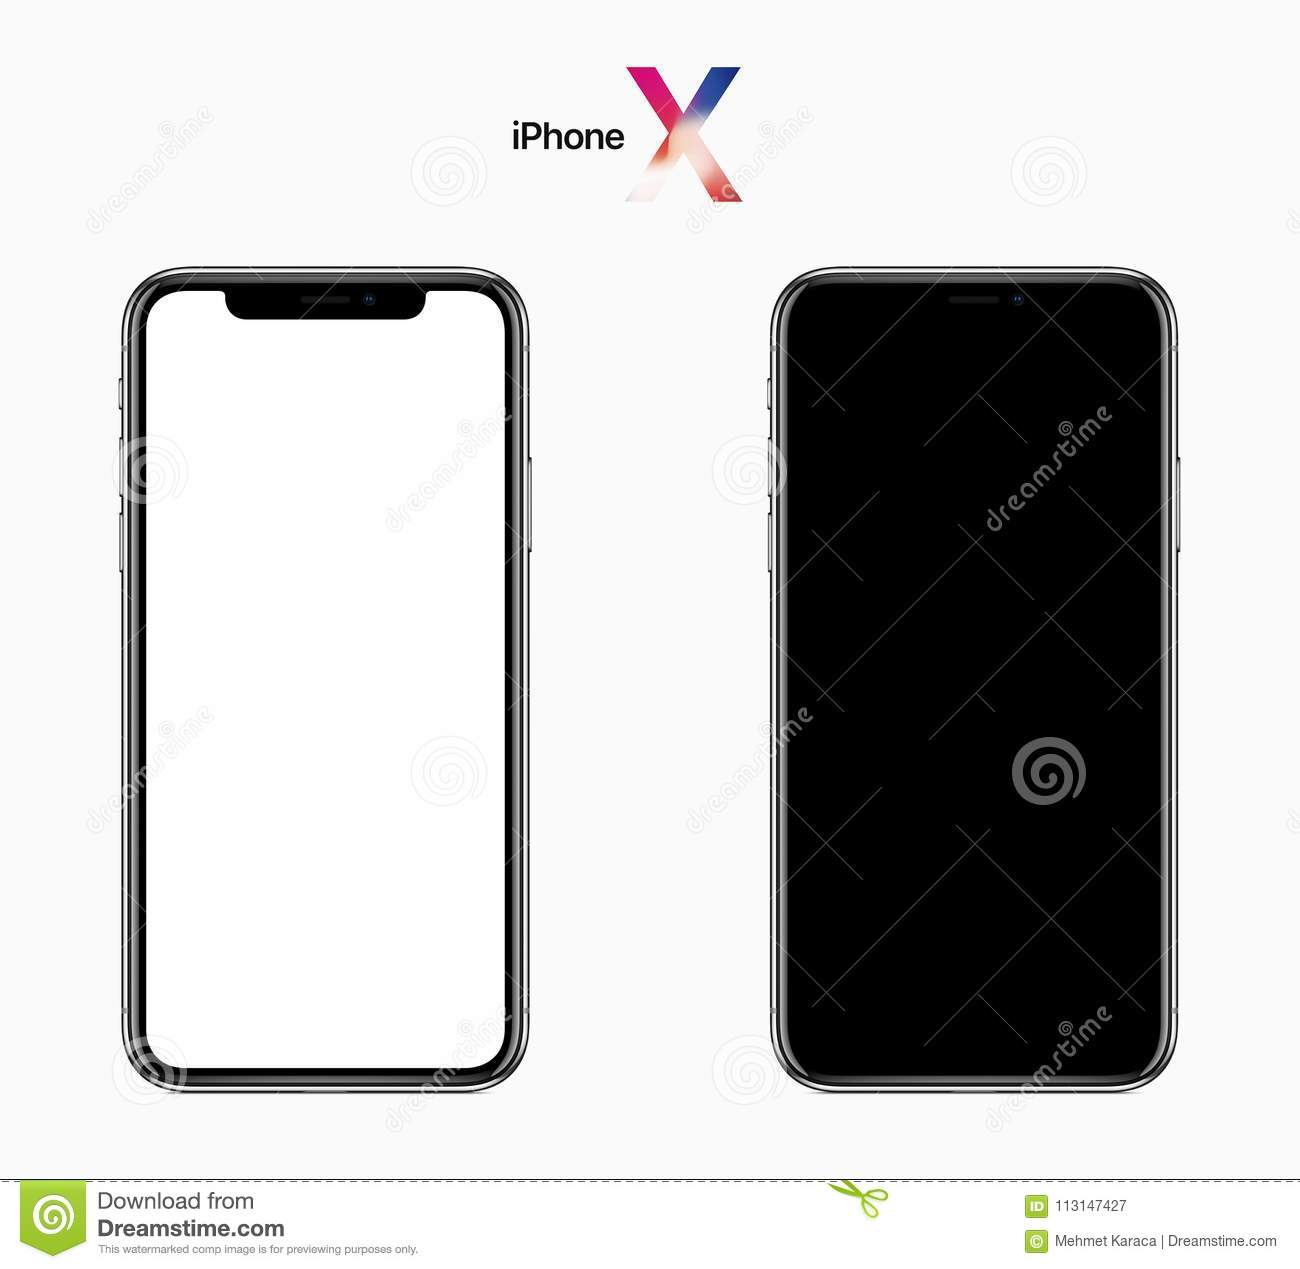 Apple iPhone X, 2017, Front View, Black and White Screens with Clipping Path